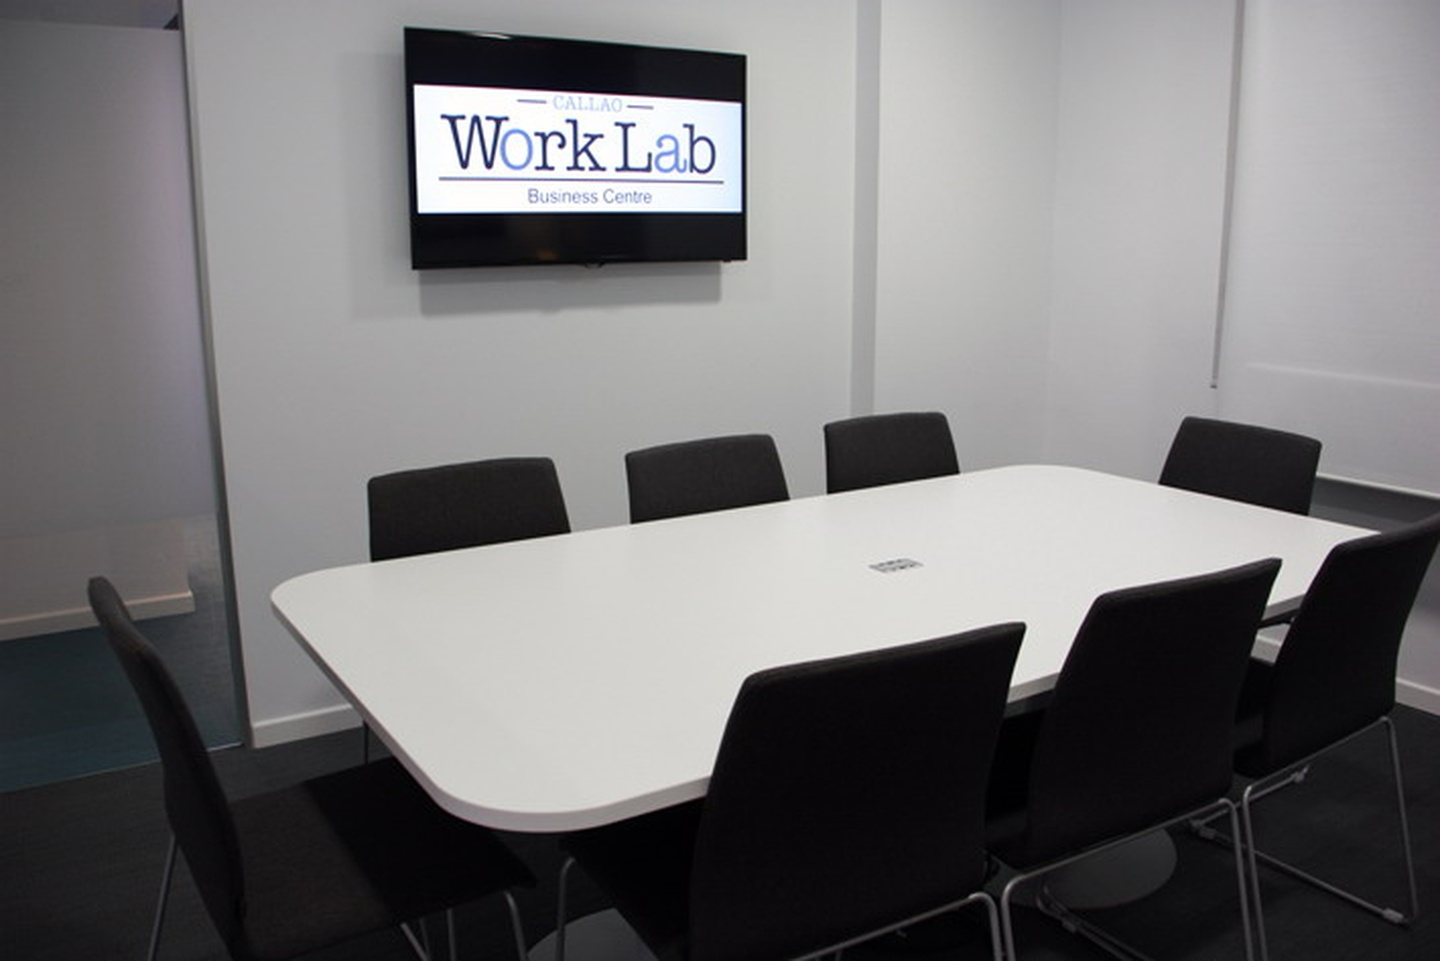 Madrid conference rooms Meetingraum WorkLab - Meeting Room image 0